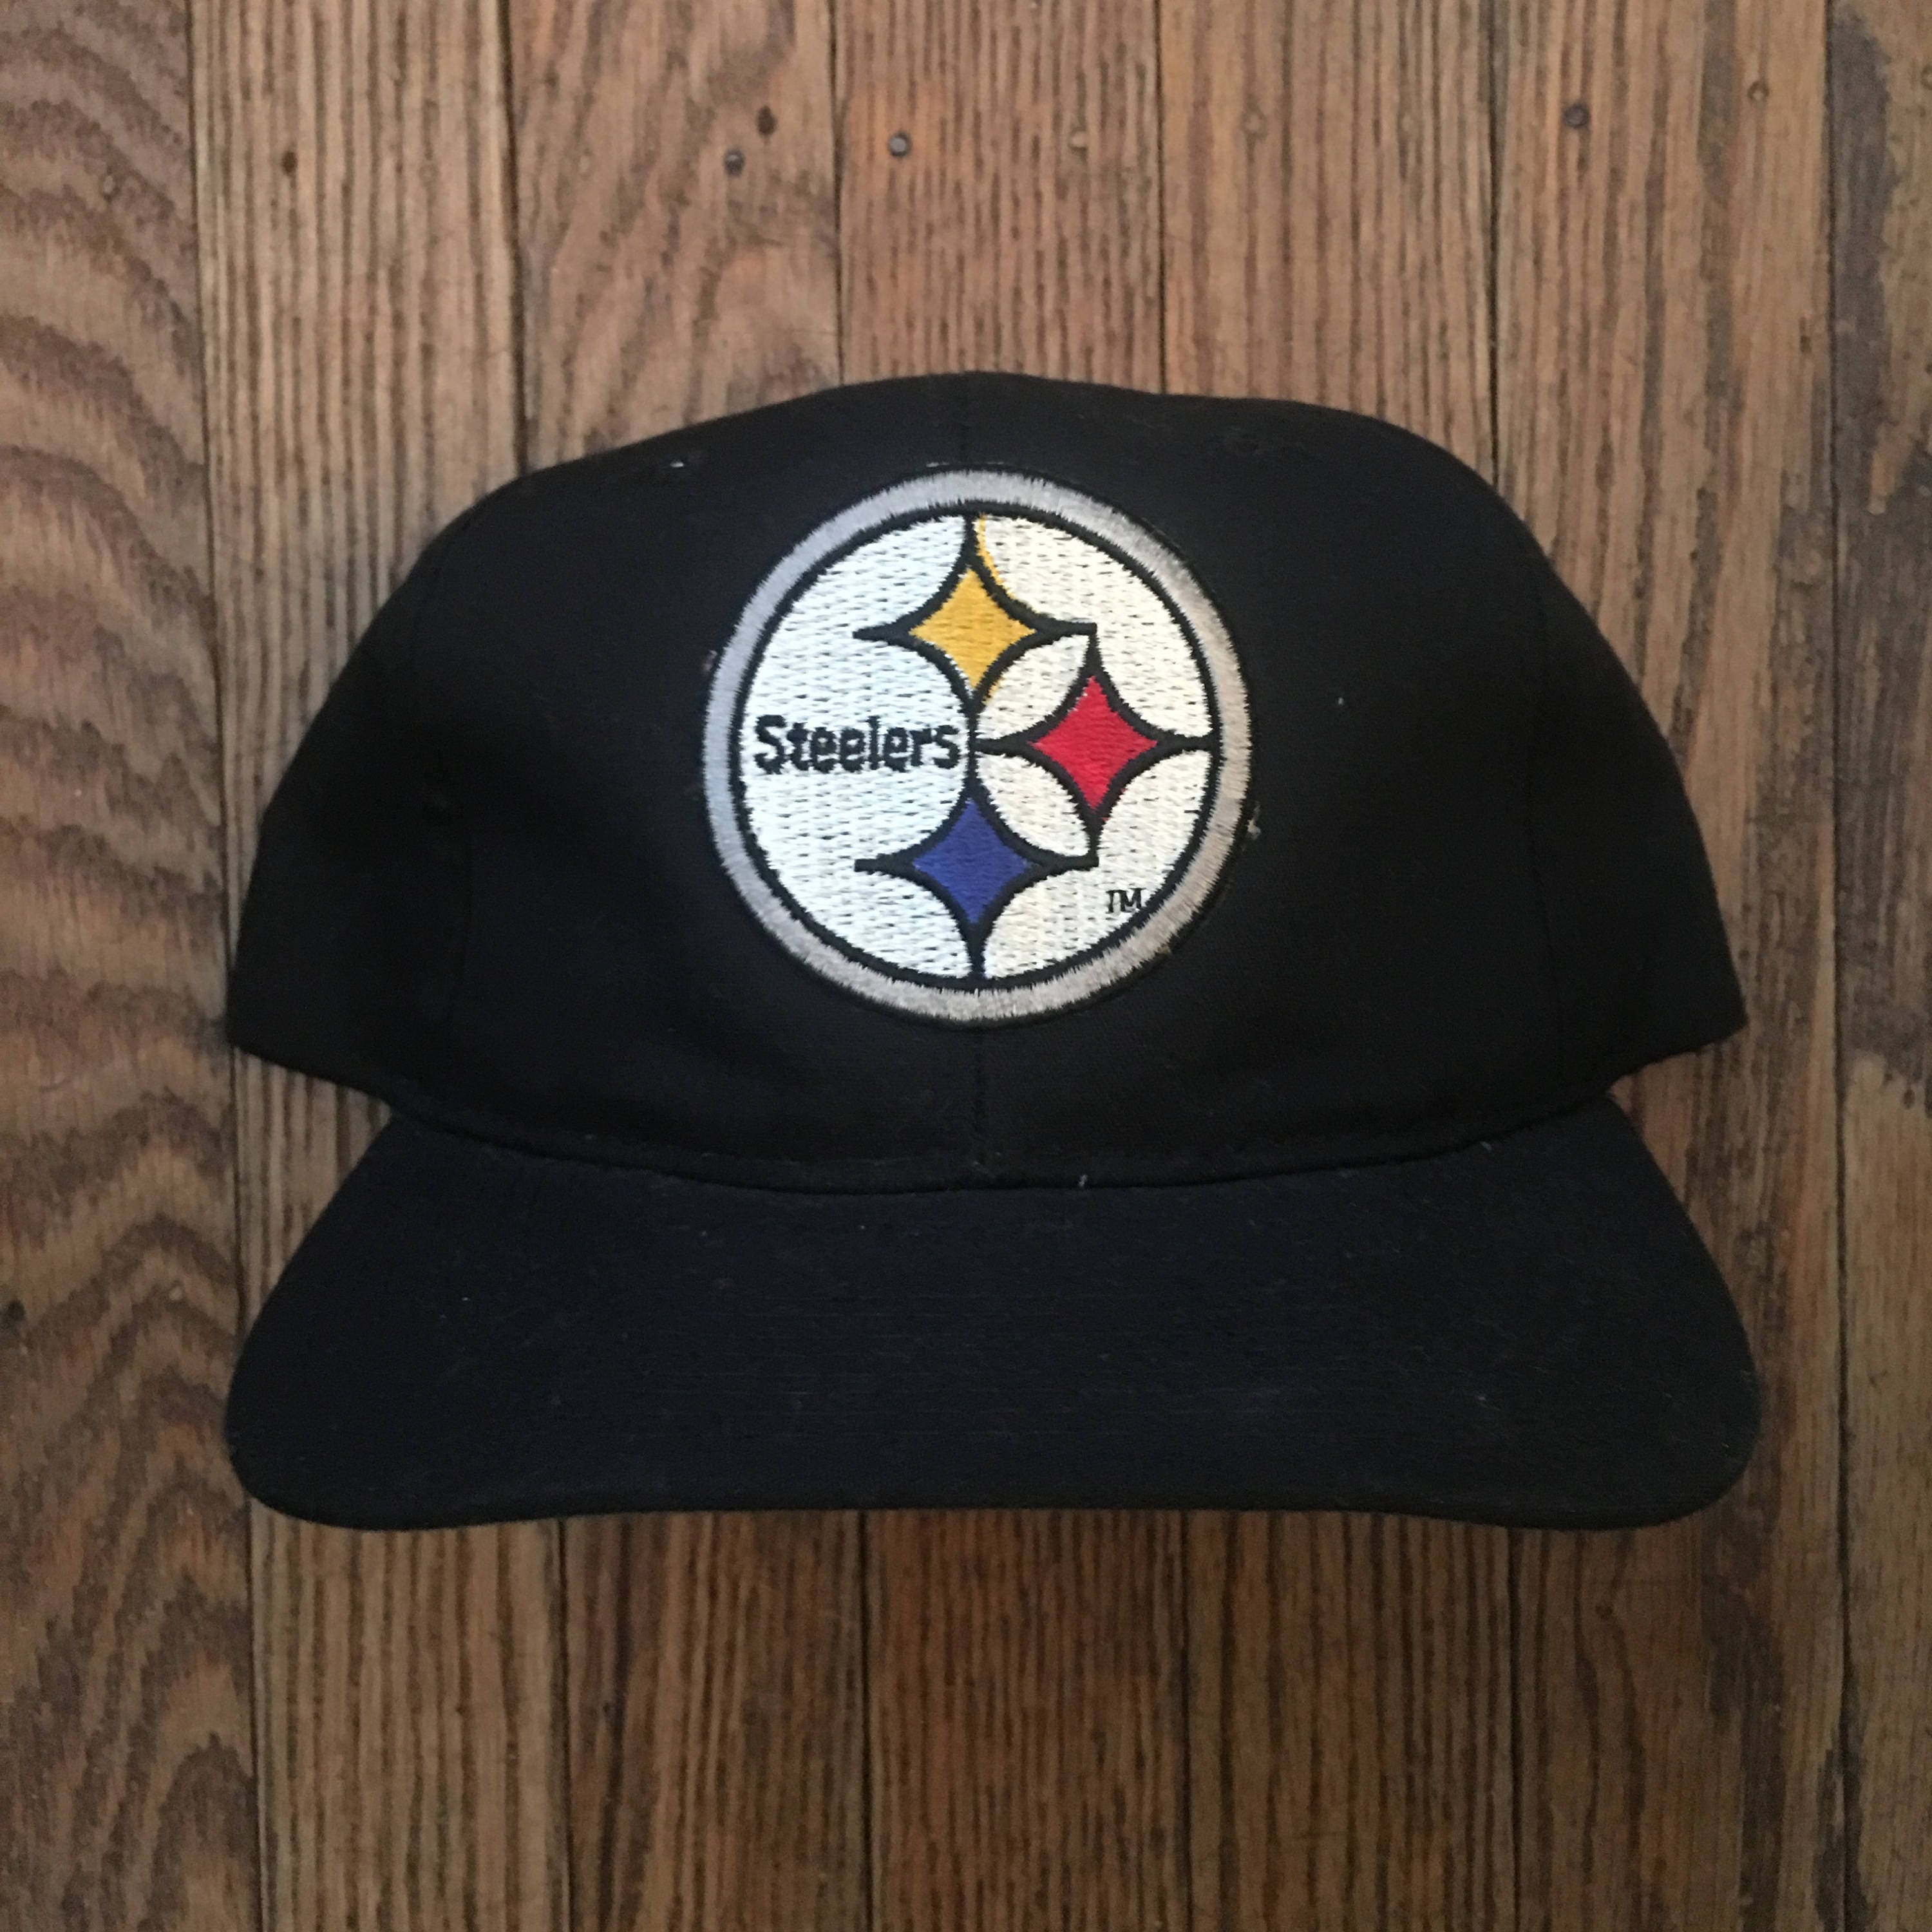 8fd1d322d6d70 Vintage 90s Pittsburgh Steelers NFL New Era Pro Model Snapback